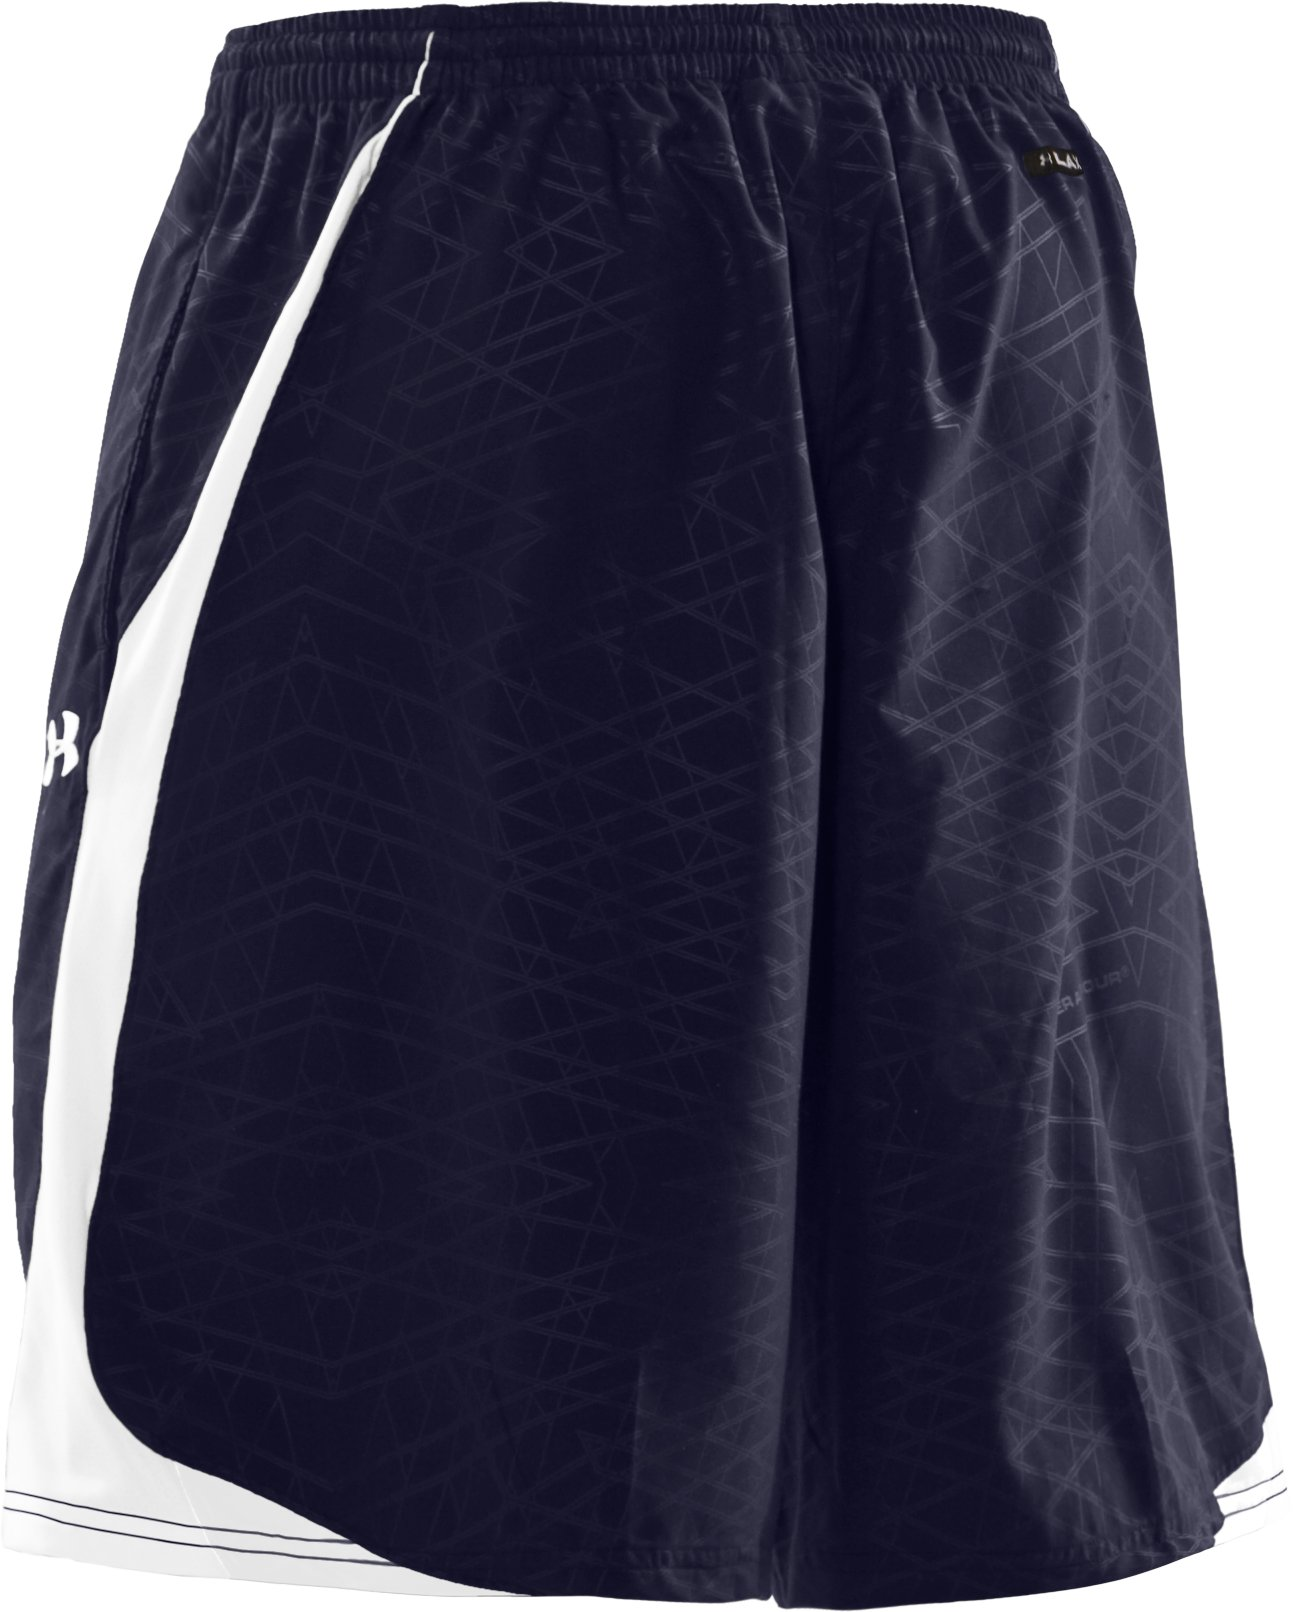 Men's UA Unity Shorts, Midnight Navy